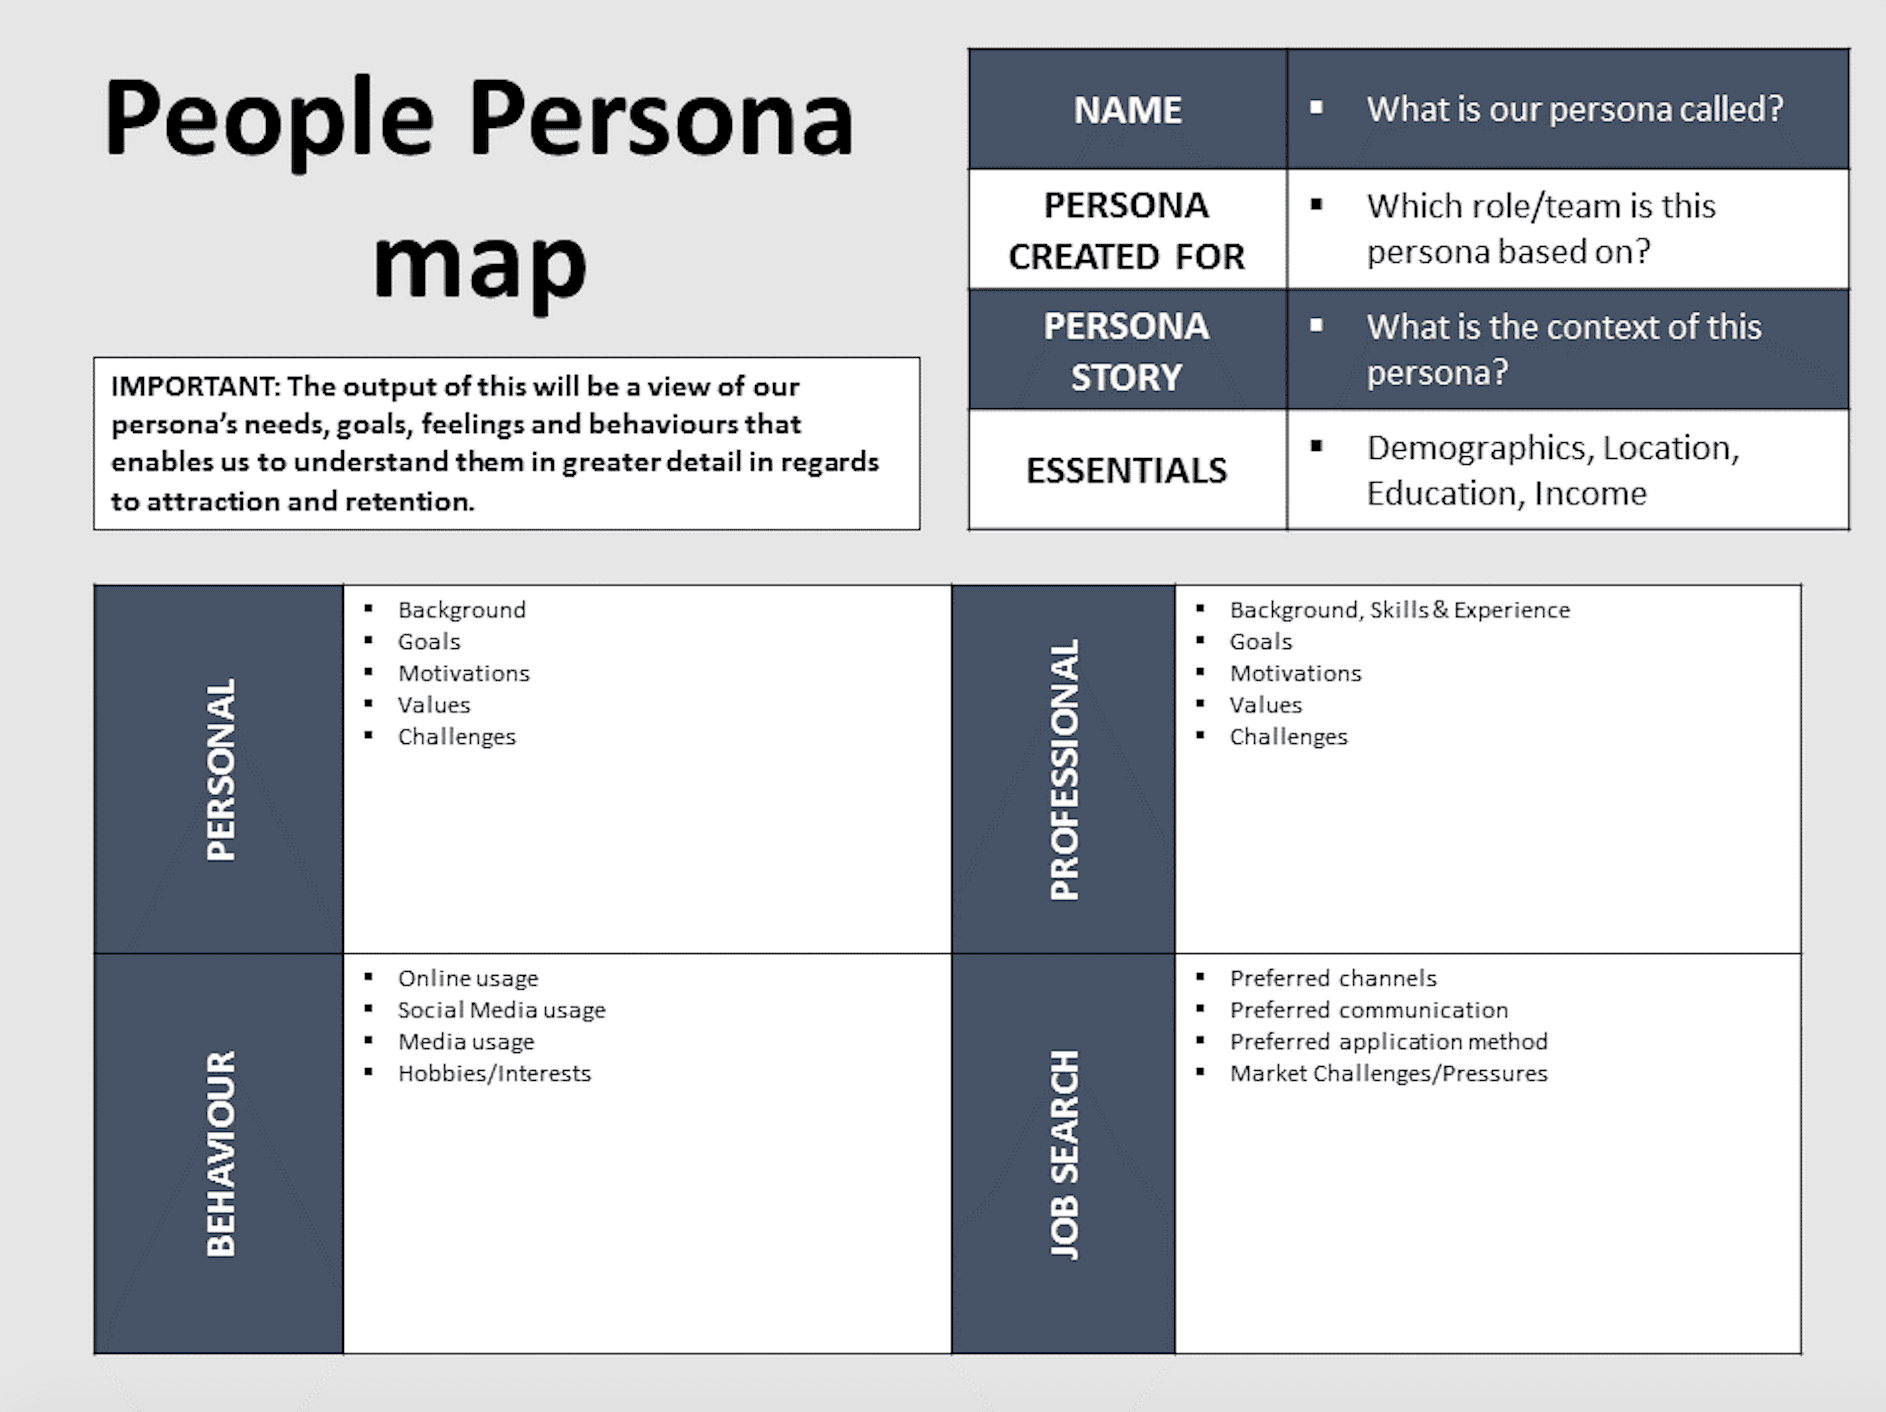 Candidate Persona Map Template, by Ben Gledhill, on Rally Recruitment Marketing